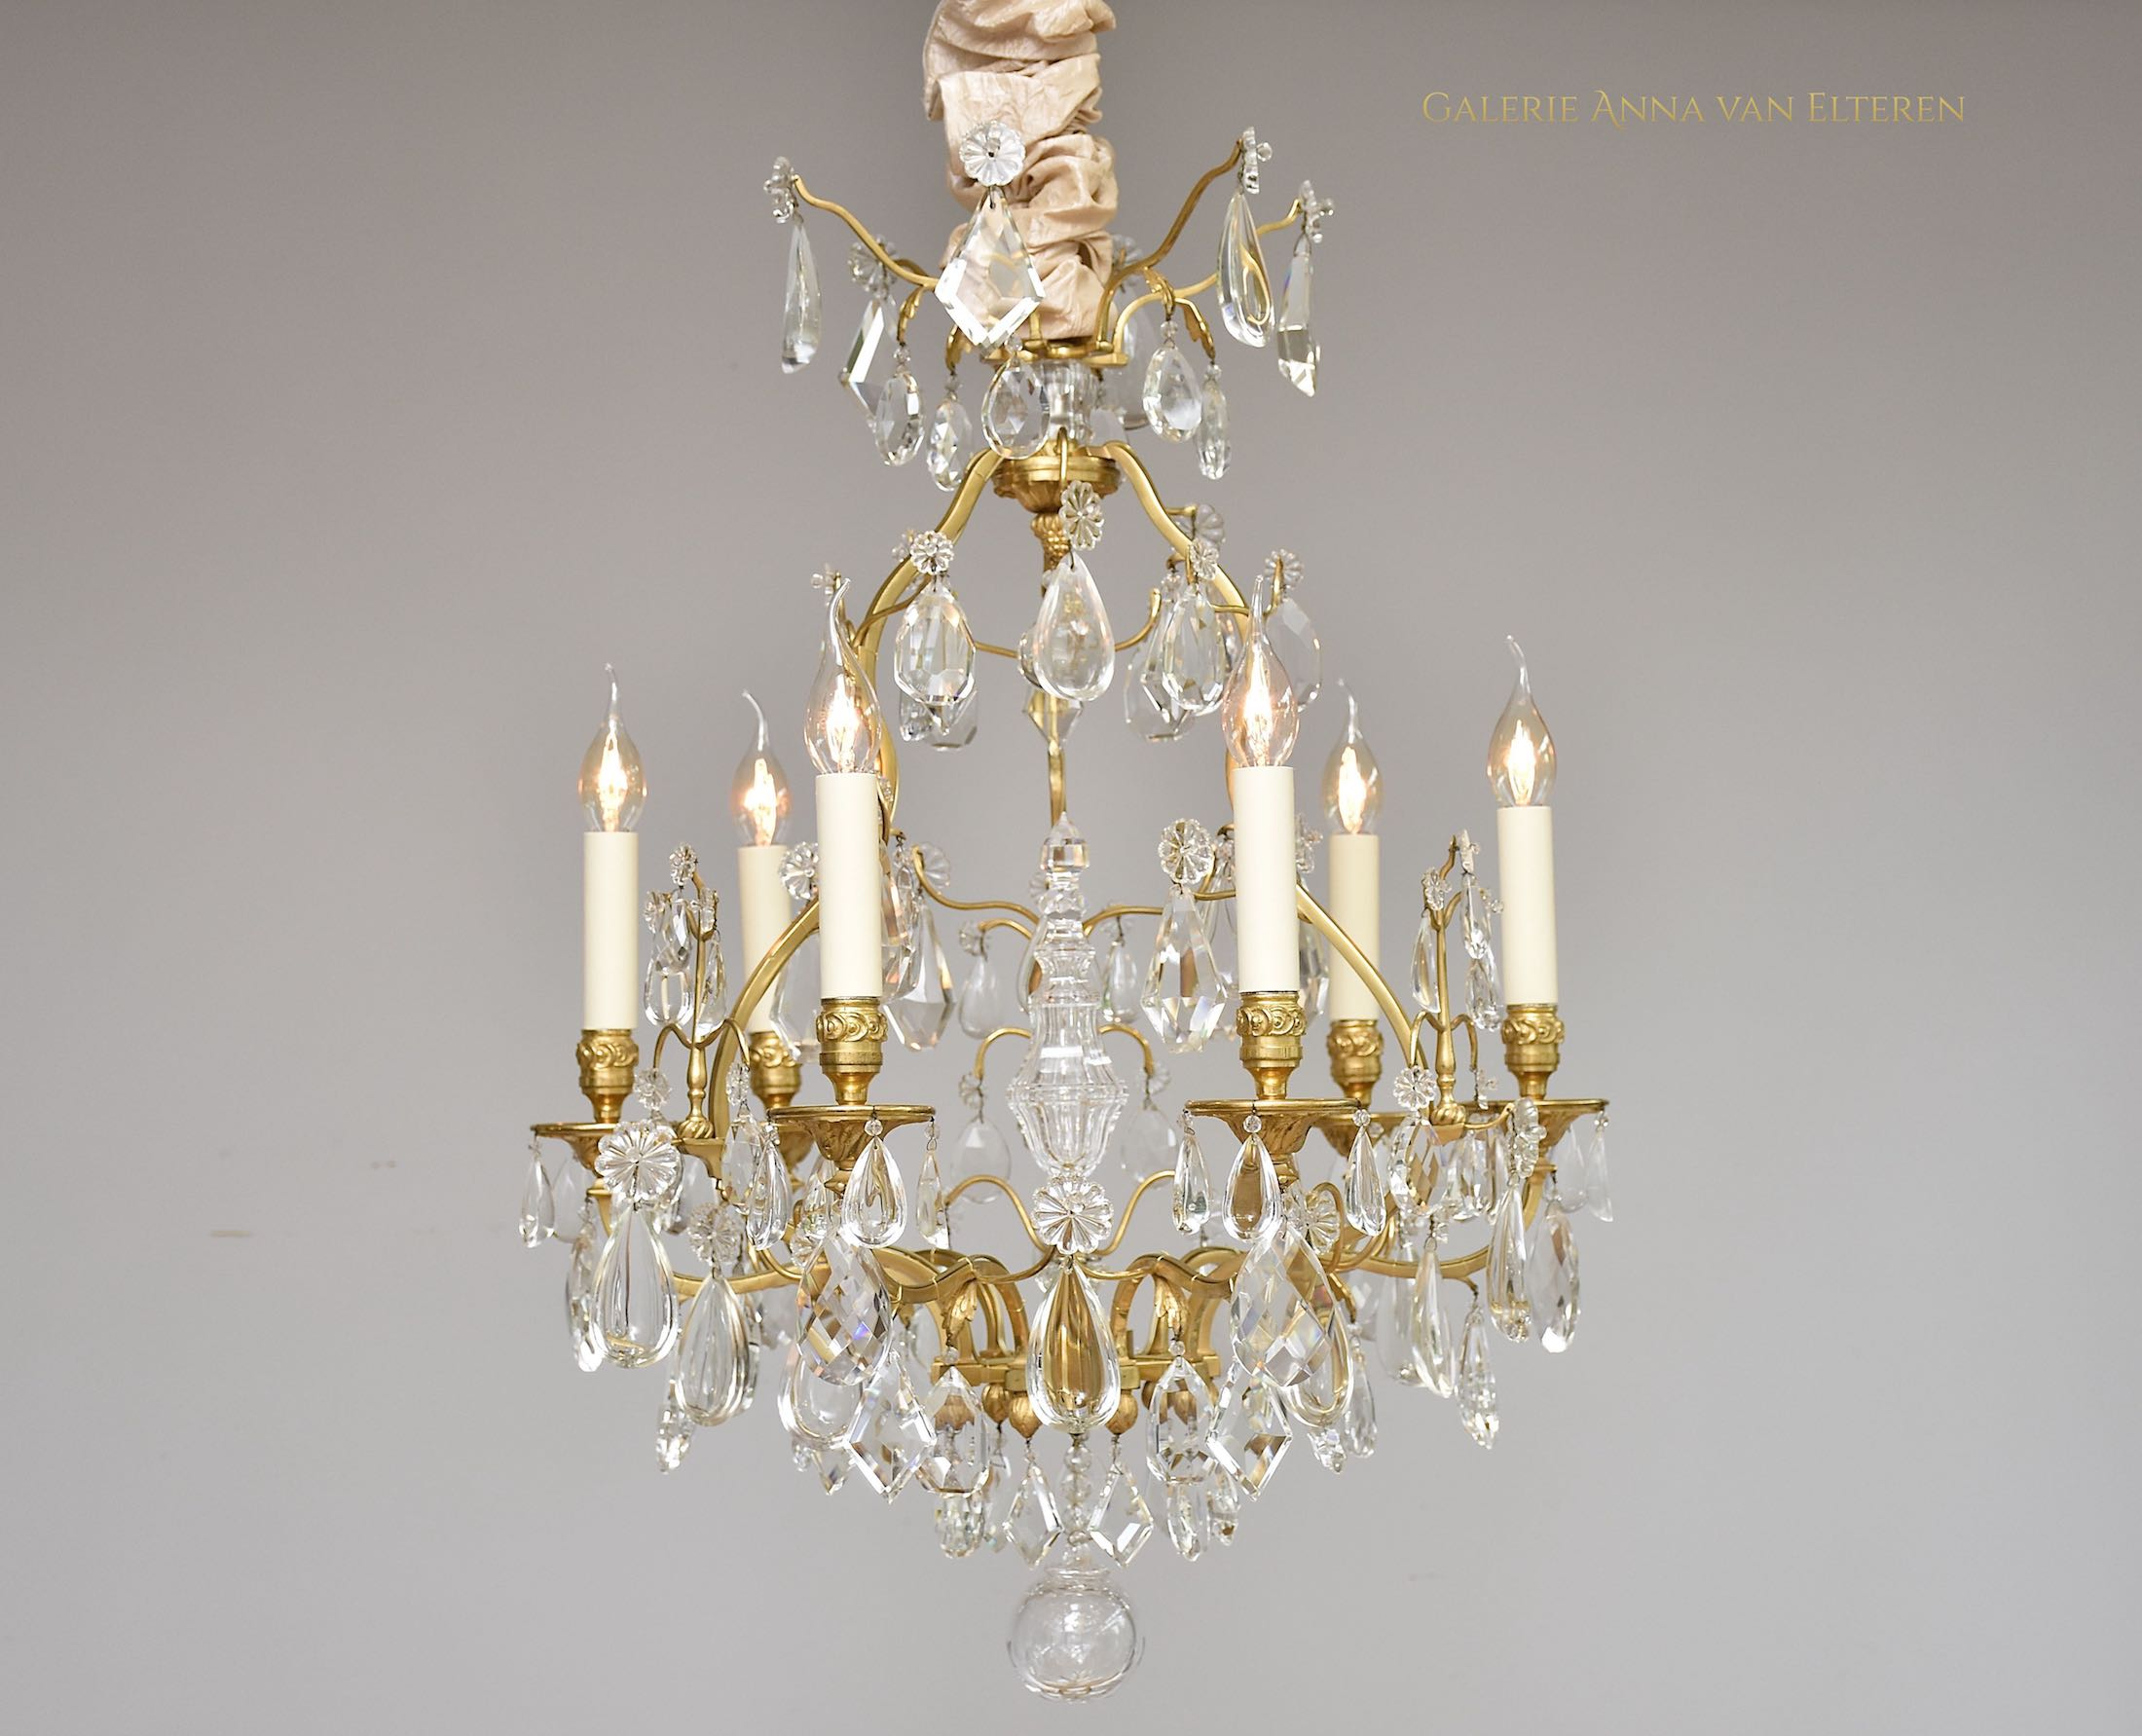 Gilt bronze French chandelier by Maison Baguès